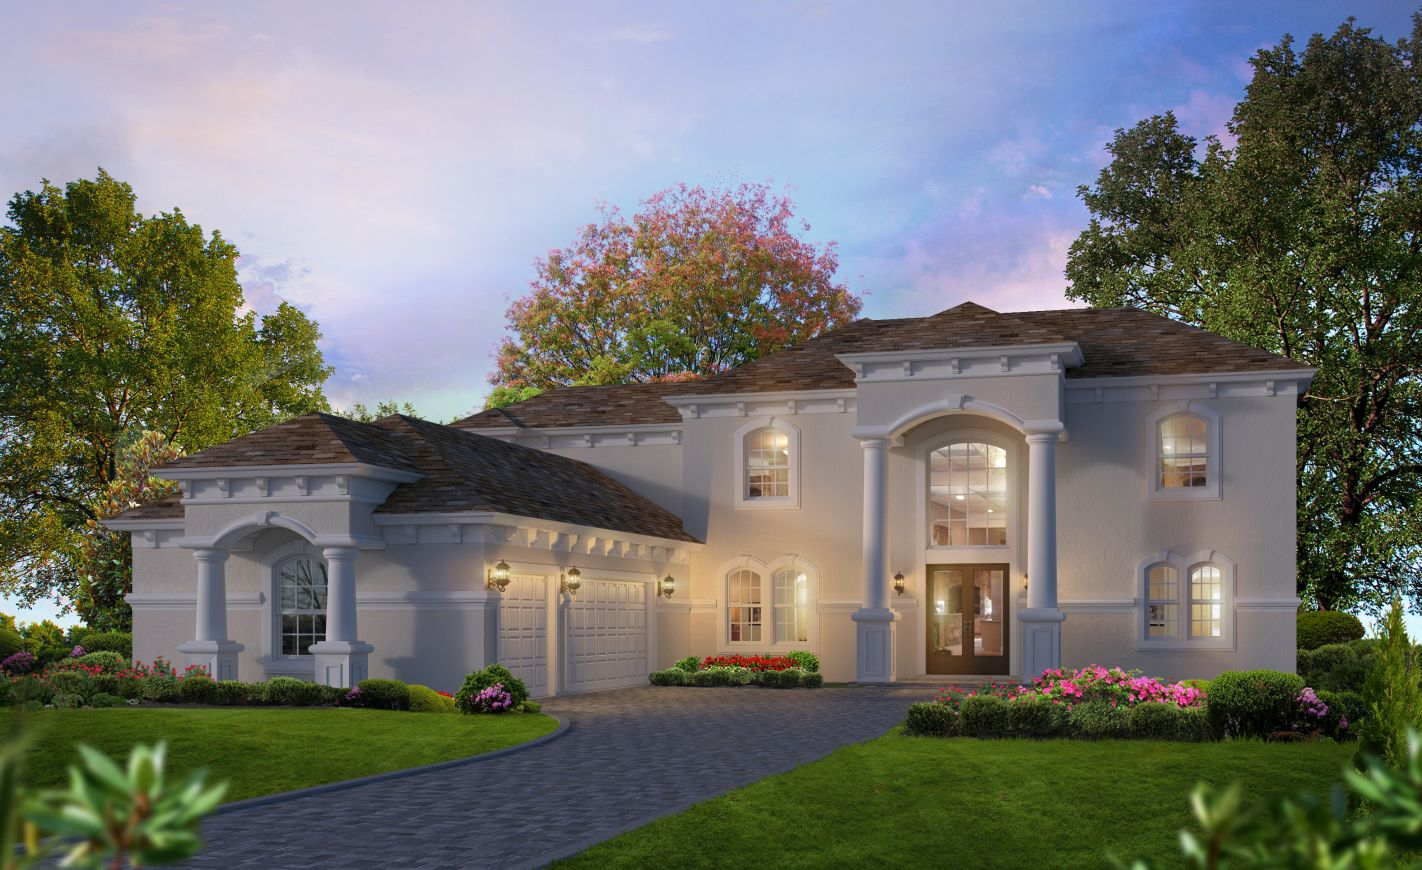 New Homes for Sale in Jacksonville FL  - The Southern Breeze II at Tamaya